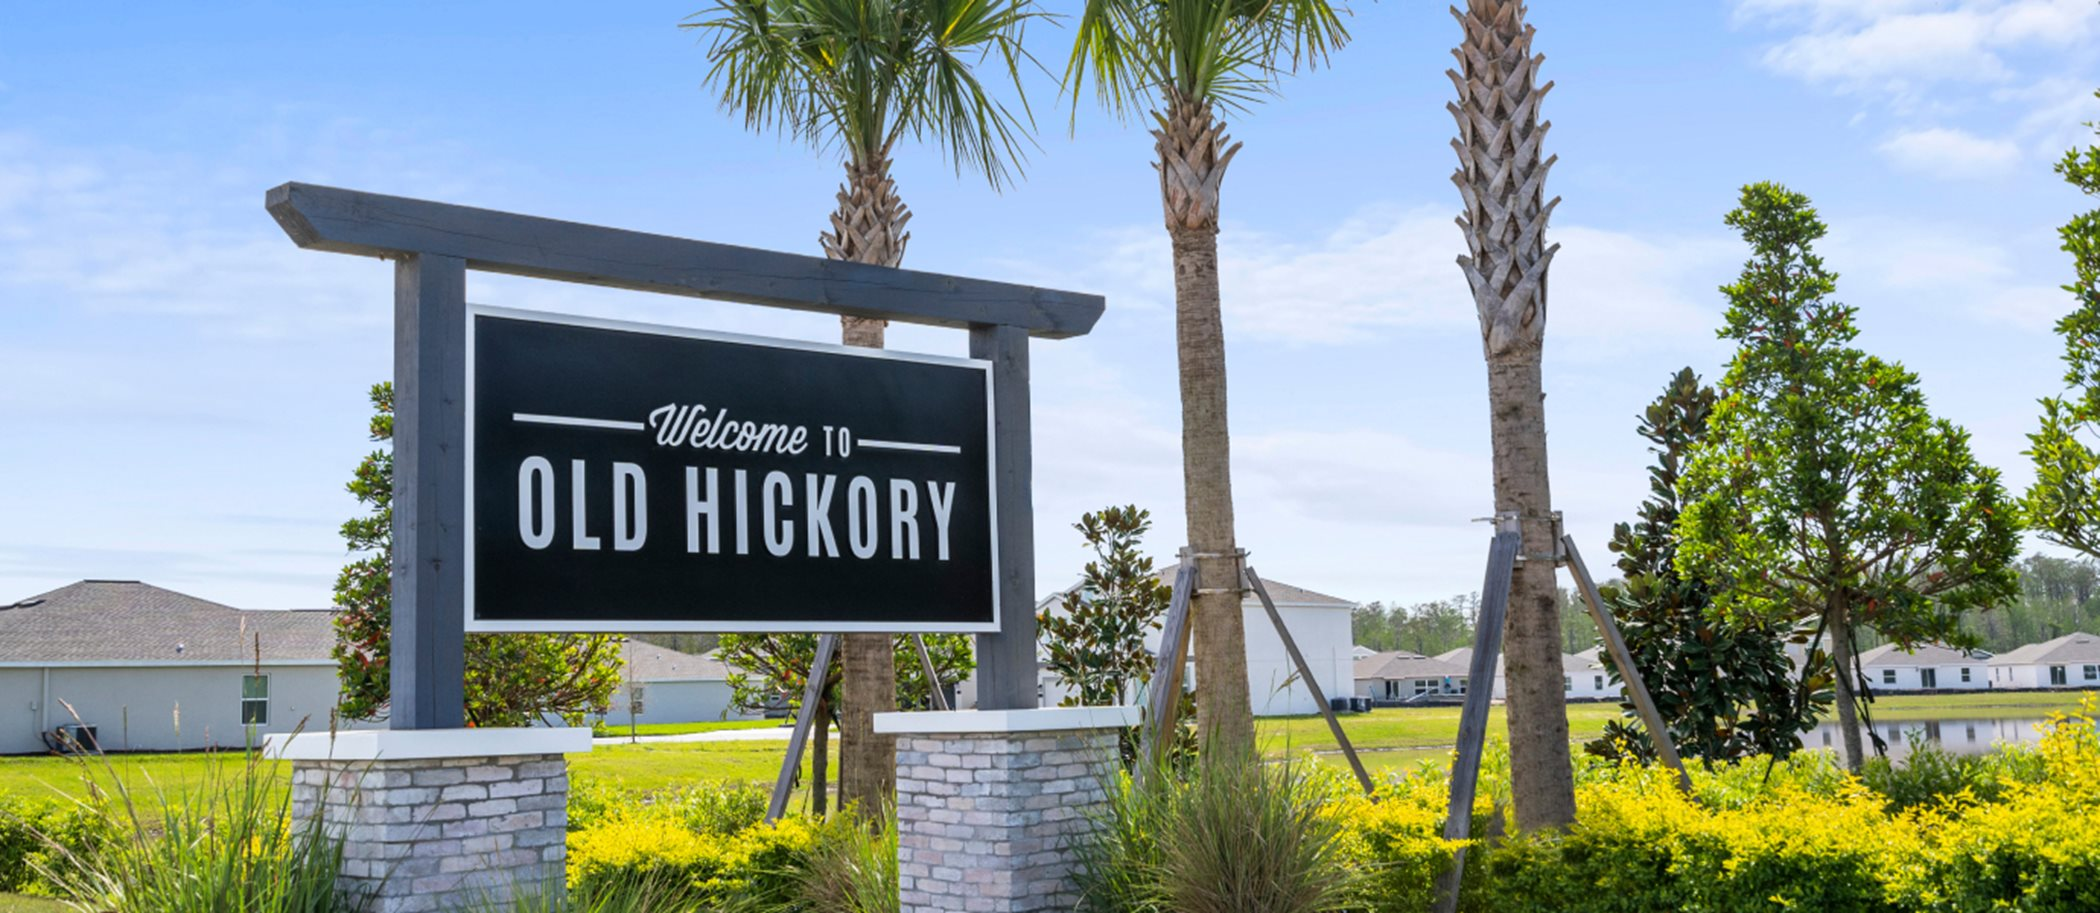 Old Hickory monument sign